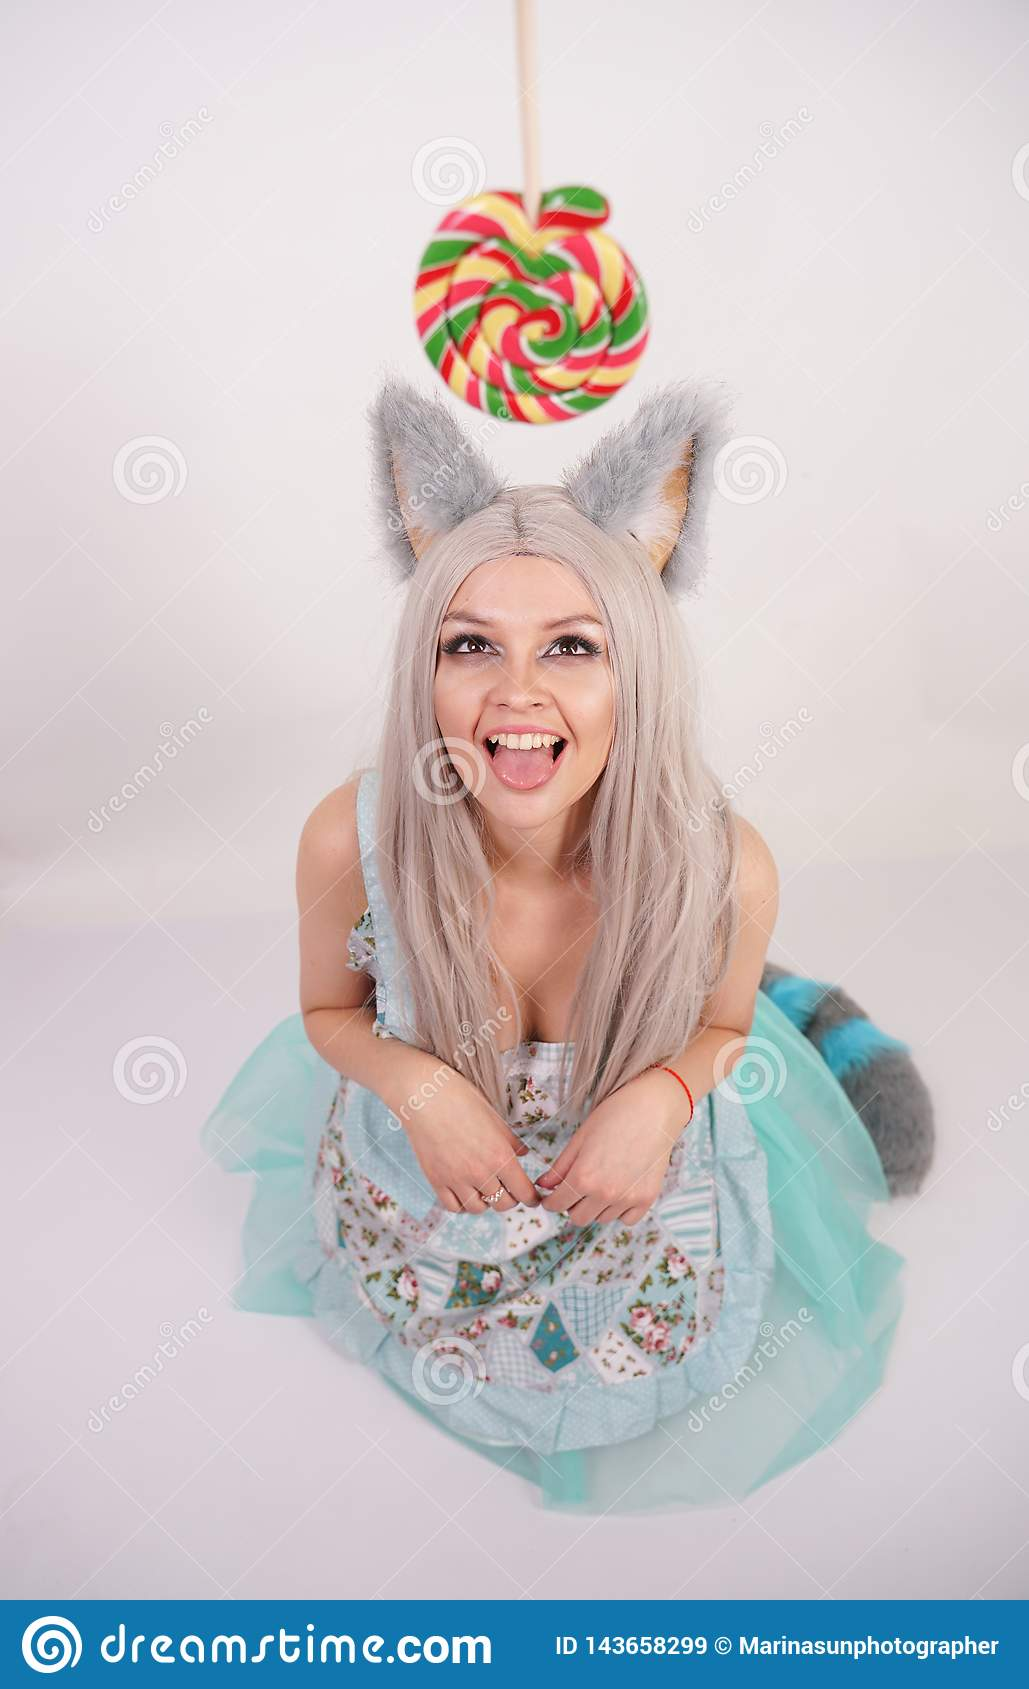 Funny girl with fluffy fur cat ears stands in a kitchen apron on knees and serves as a slavery kitty to get candy on a white backg